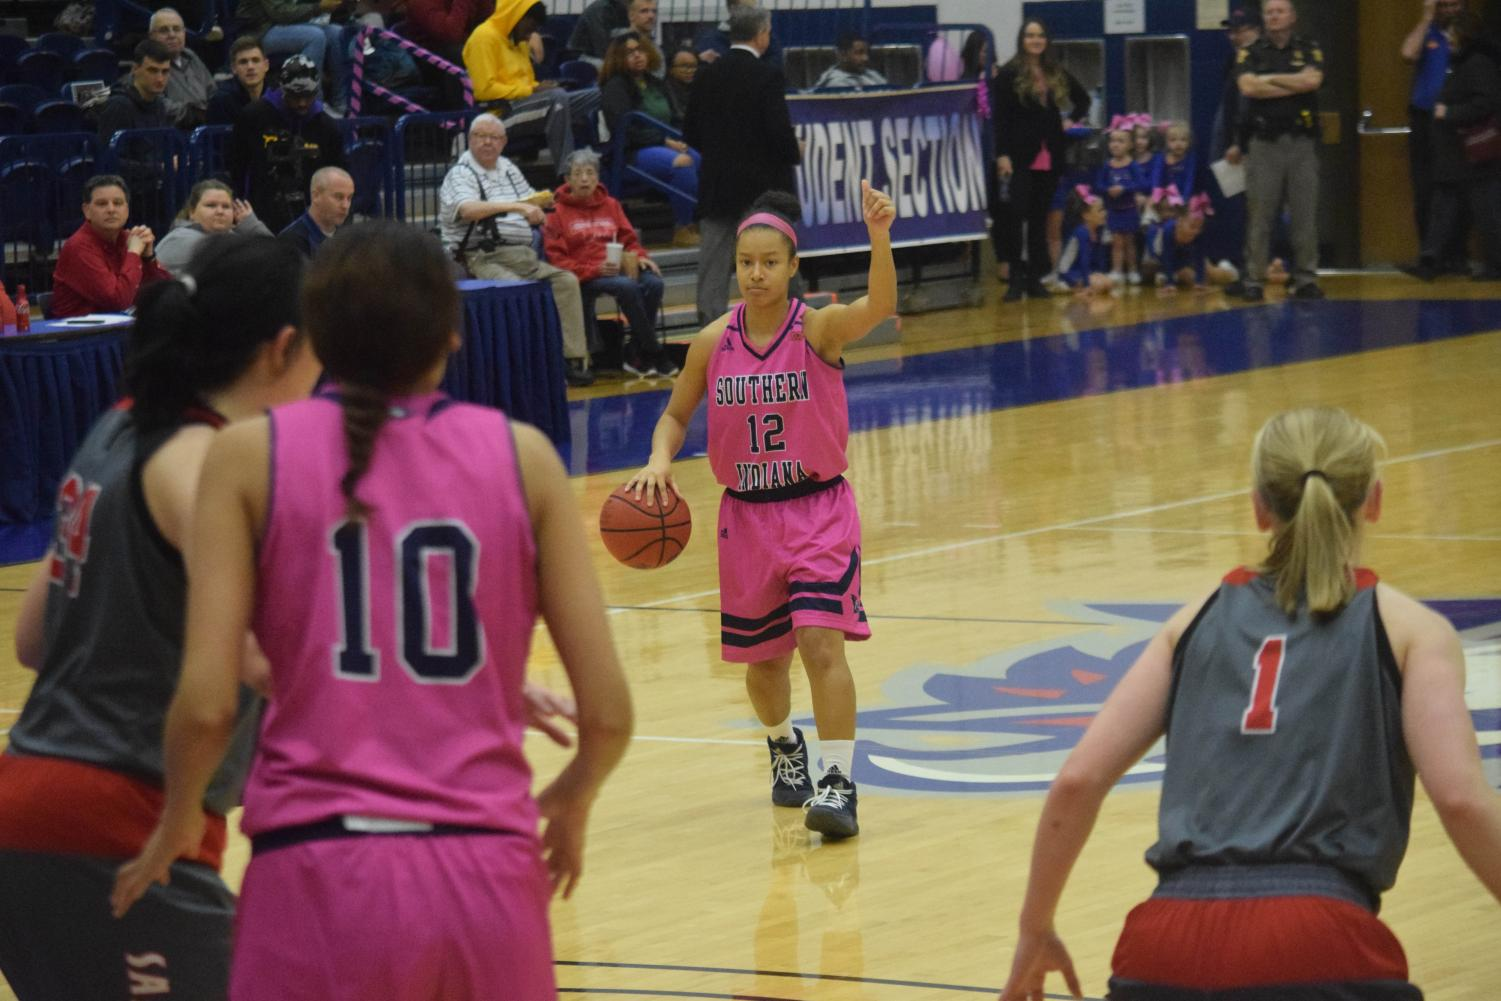 Ashley+Johnson%2C+sophomore+guard%2C+looks+to+run+the+play+against+Maryville+University.